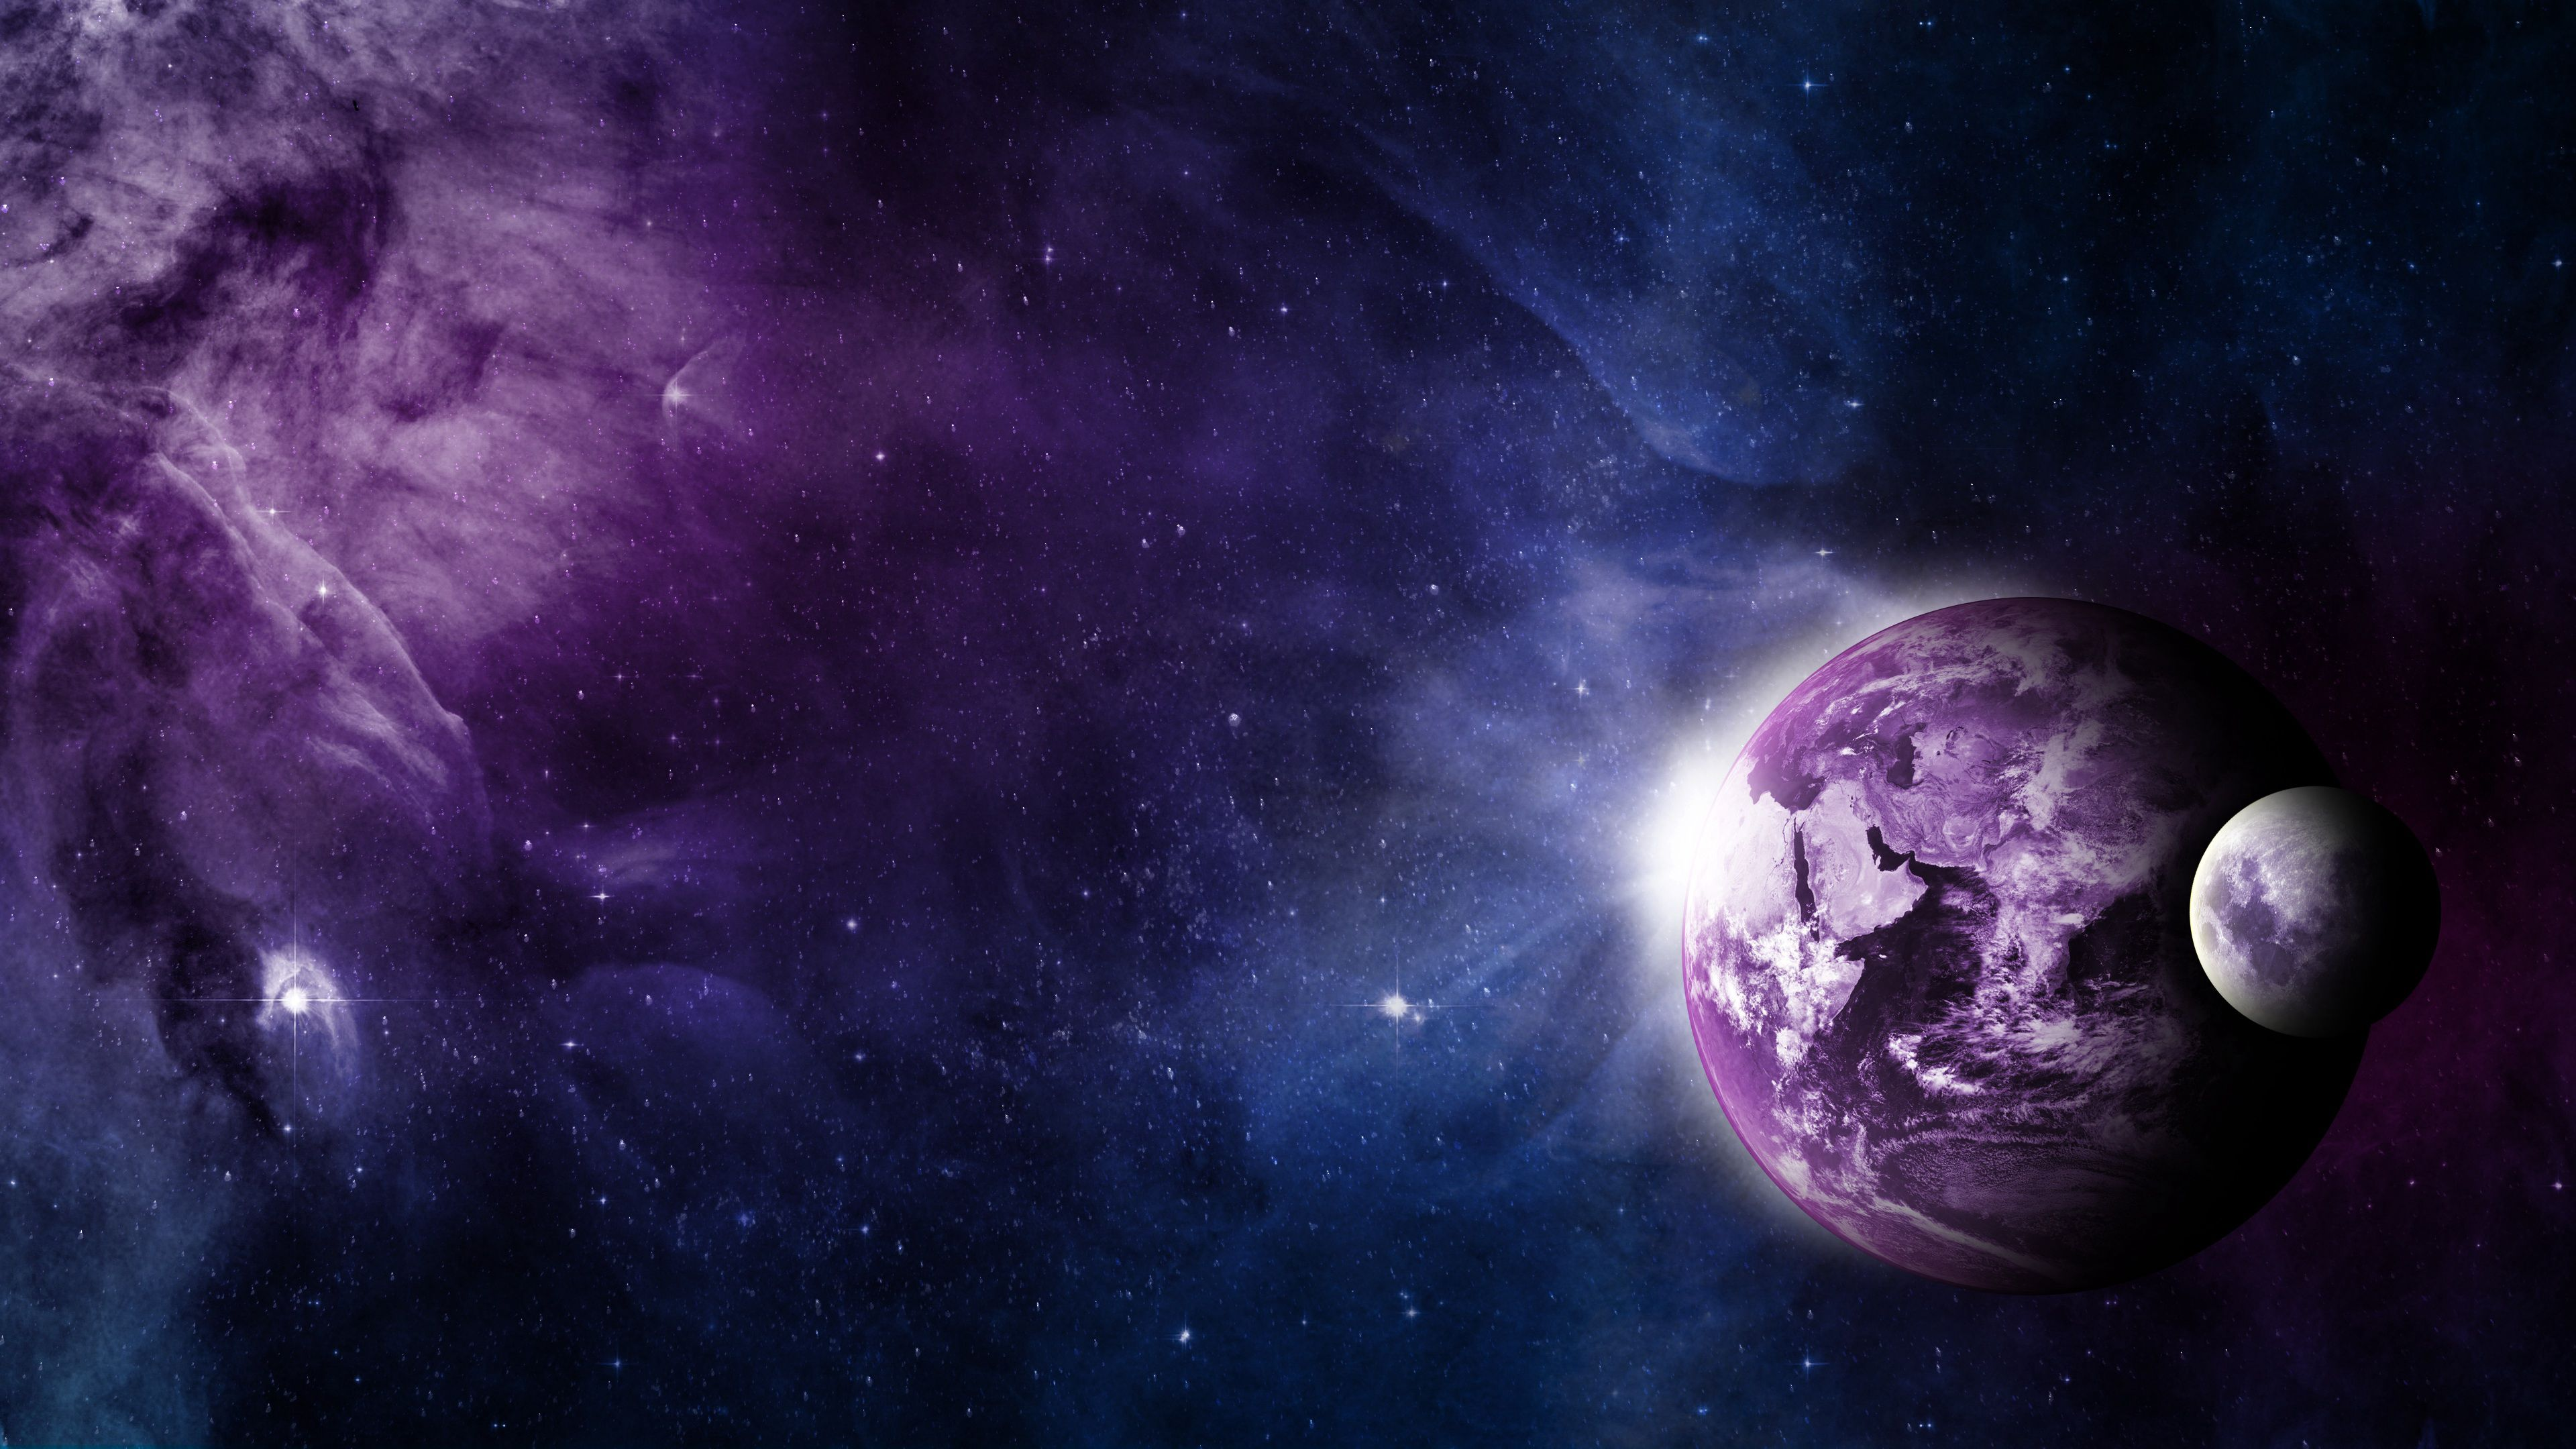 Wallpaper Earth and moon in space